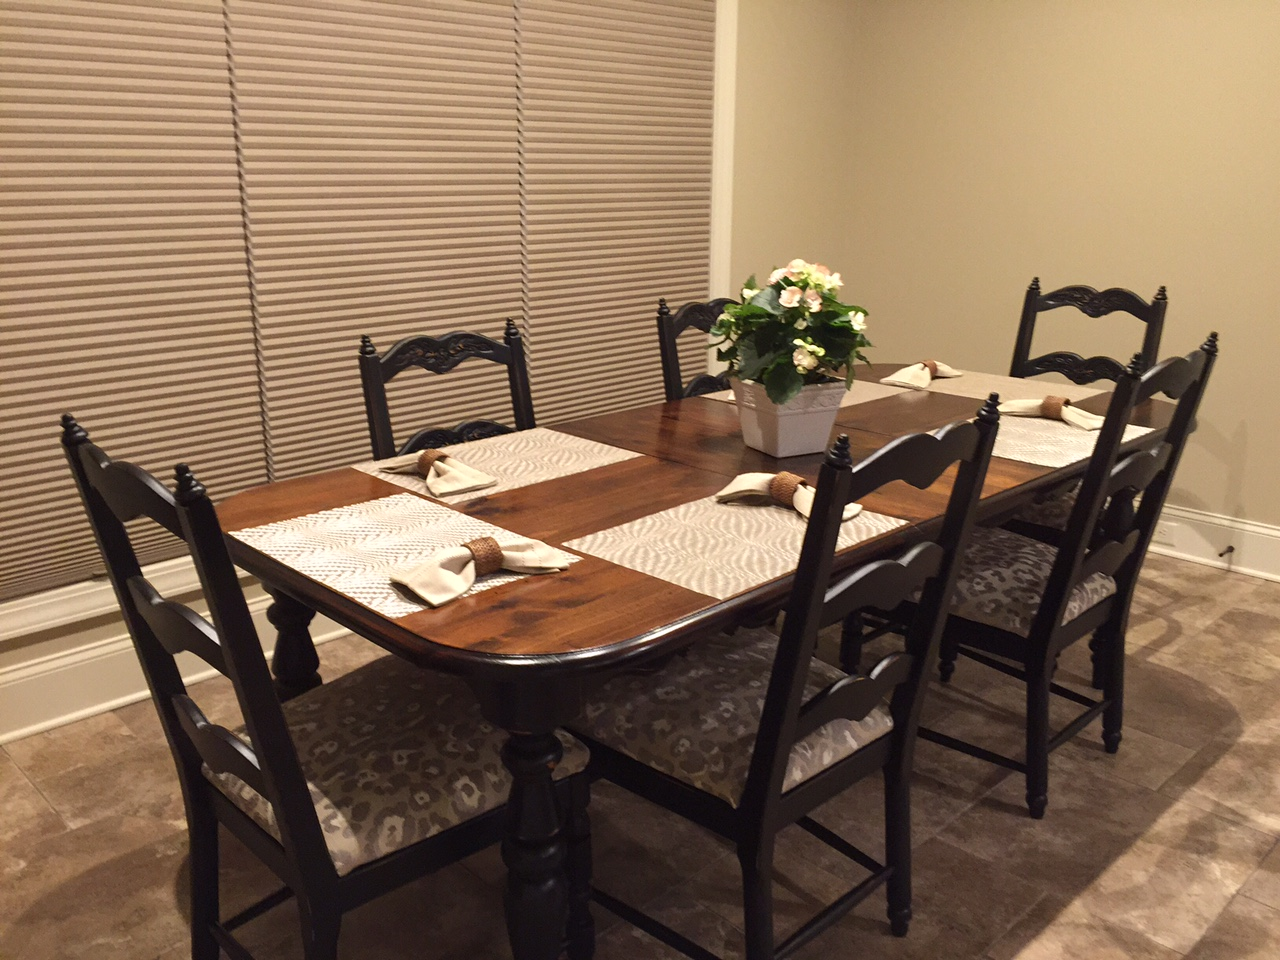 Refinishing Old Dining Room Furniture For New Home